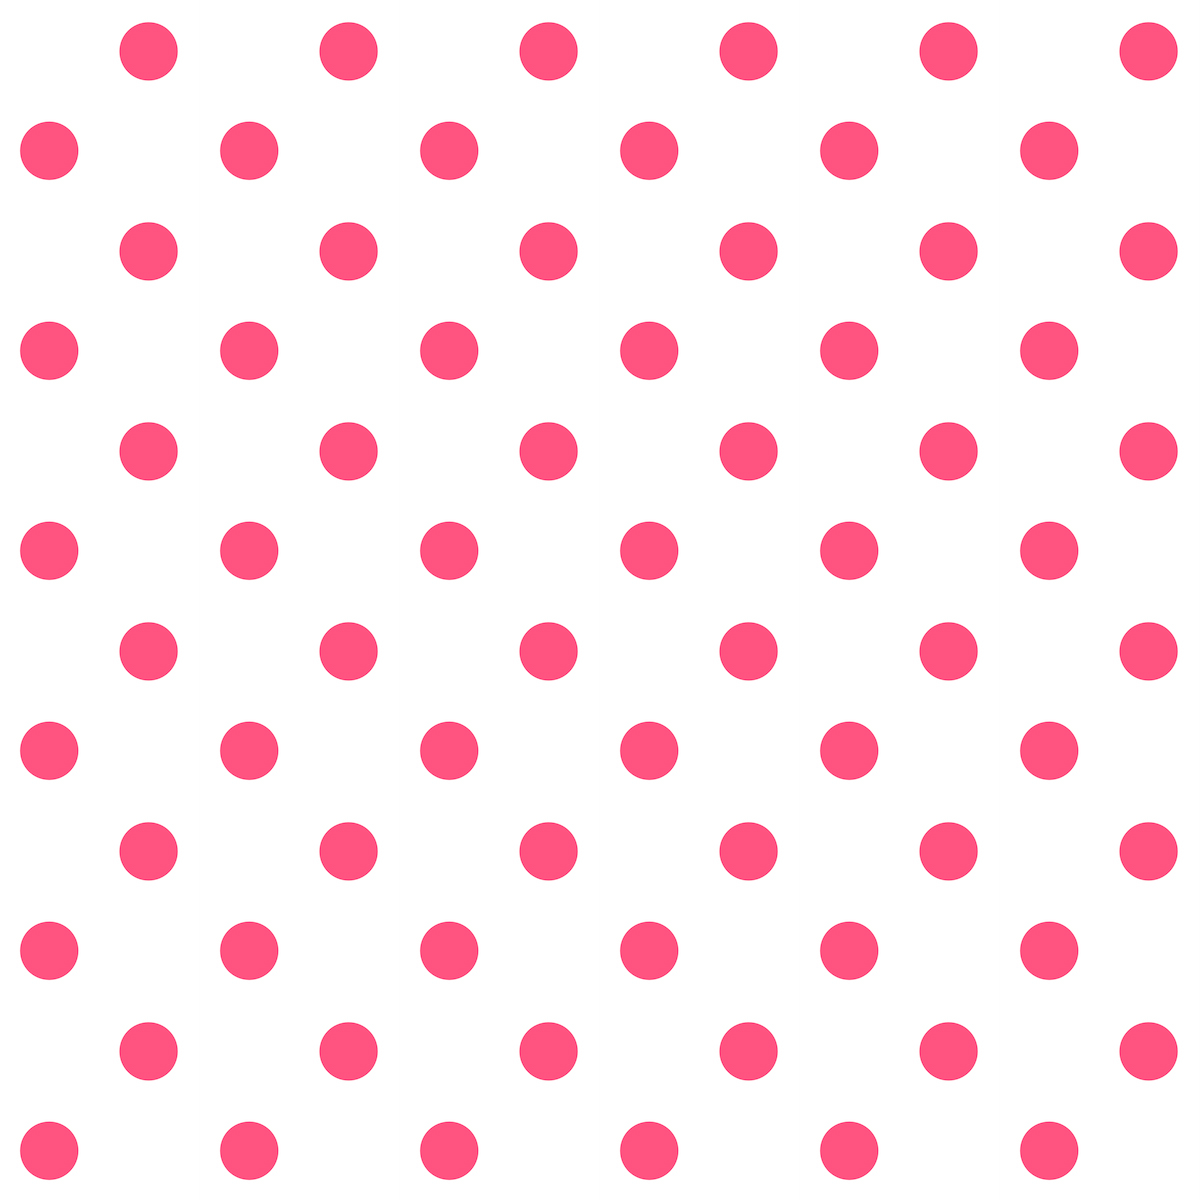 pink polka dot paper Round paper party plates 9inches celebrate in style with these paper party plates includes 12pcs dimensions: 9in diameter featured products lighting · candles & vases · favors & gifts · novelty & toys · paper lanterns · sky lanterns · tissue poms · paper straws · hand fans · balloons · tableware · hanging decor.